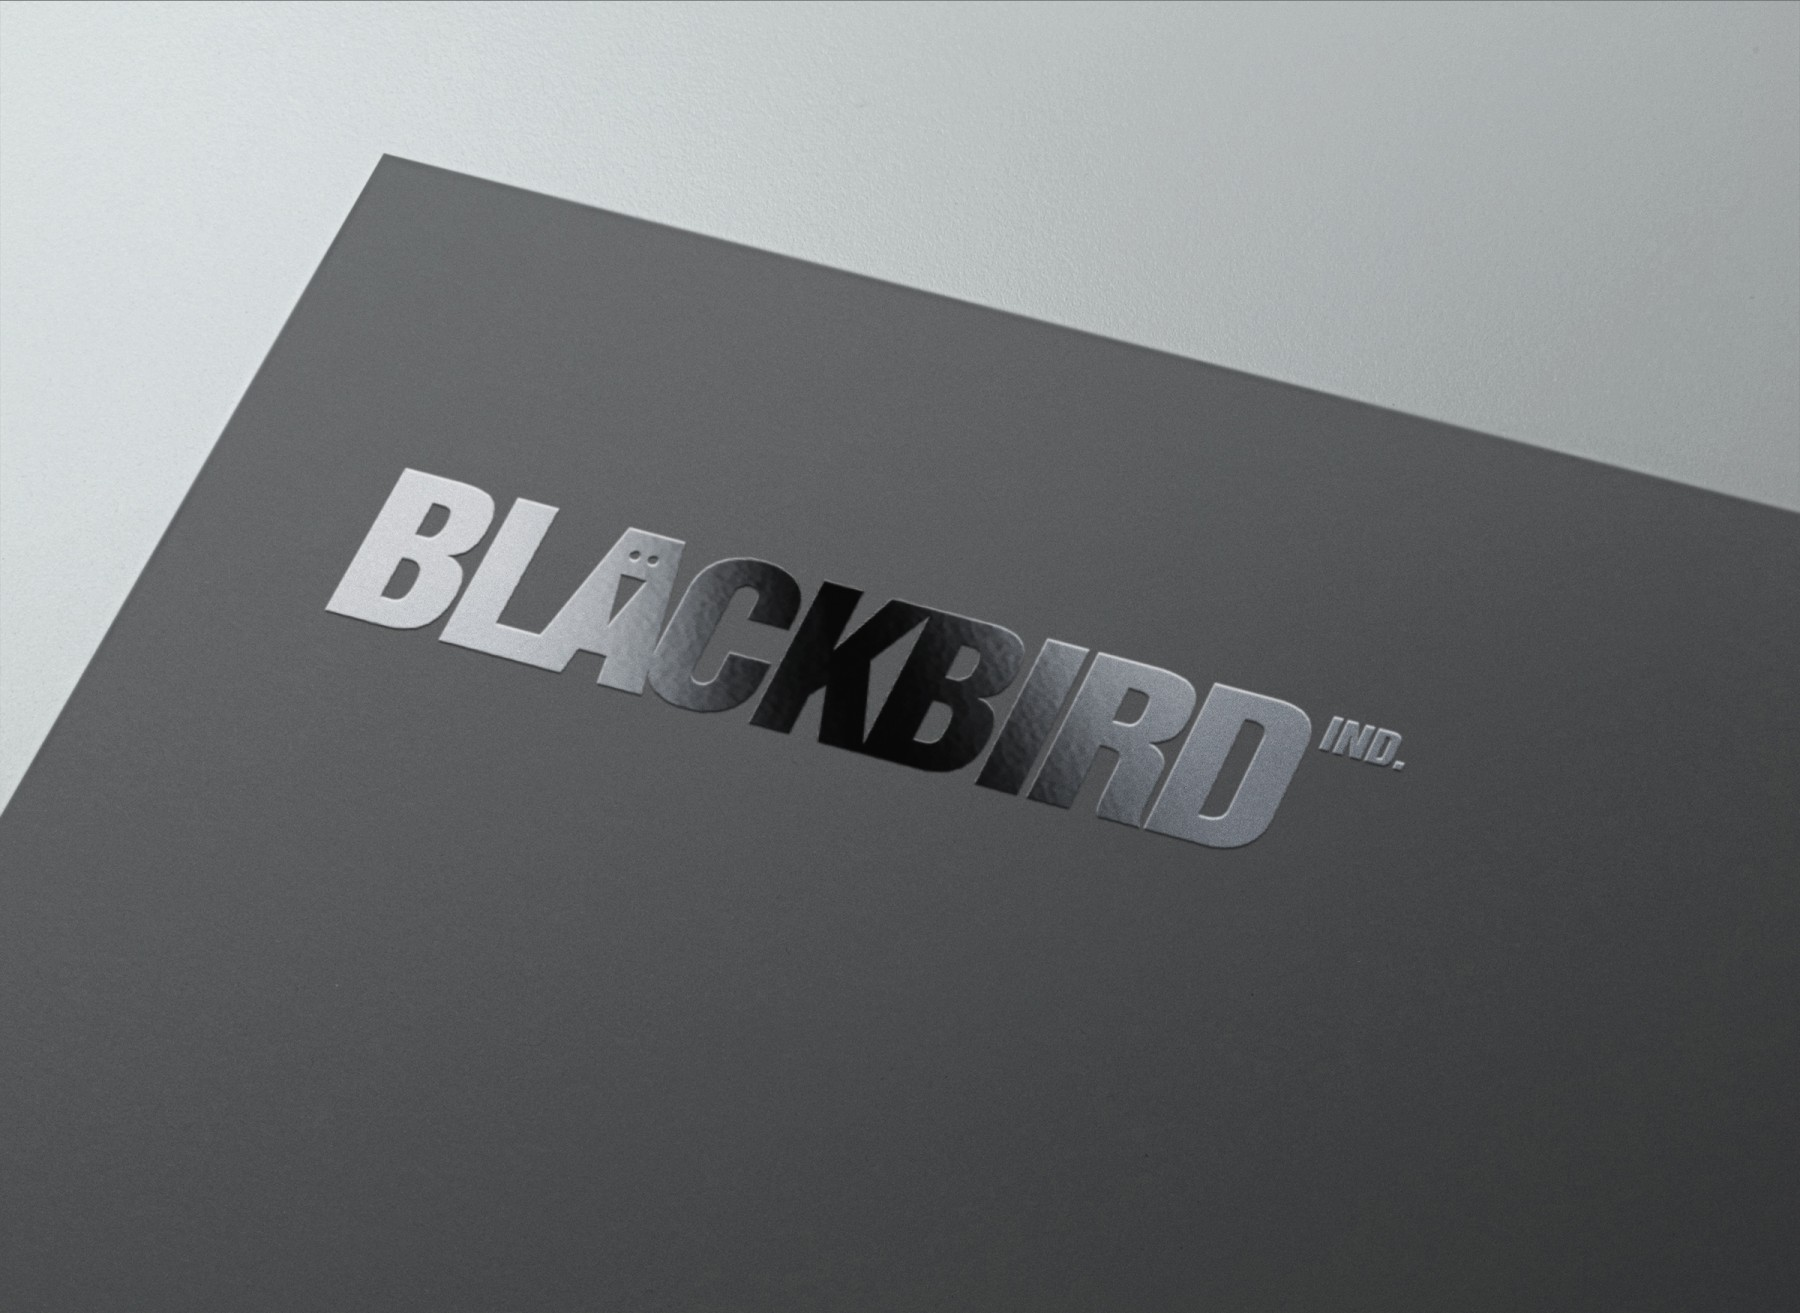 BLACKBIRD Ind. Bochum - Agentur, Kreativ, Content, Foto, Video, Design, Corporate, Business, Werbung